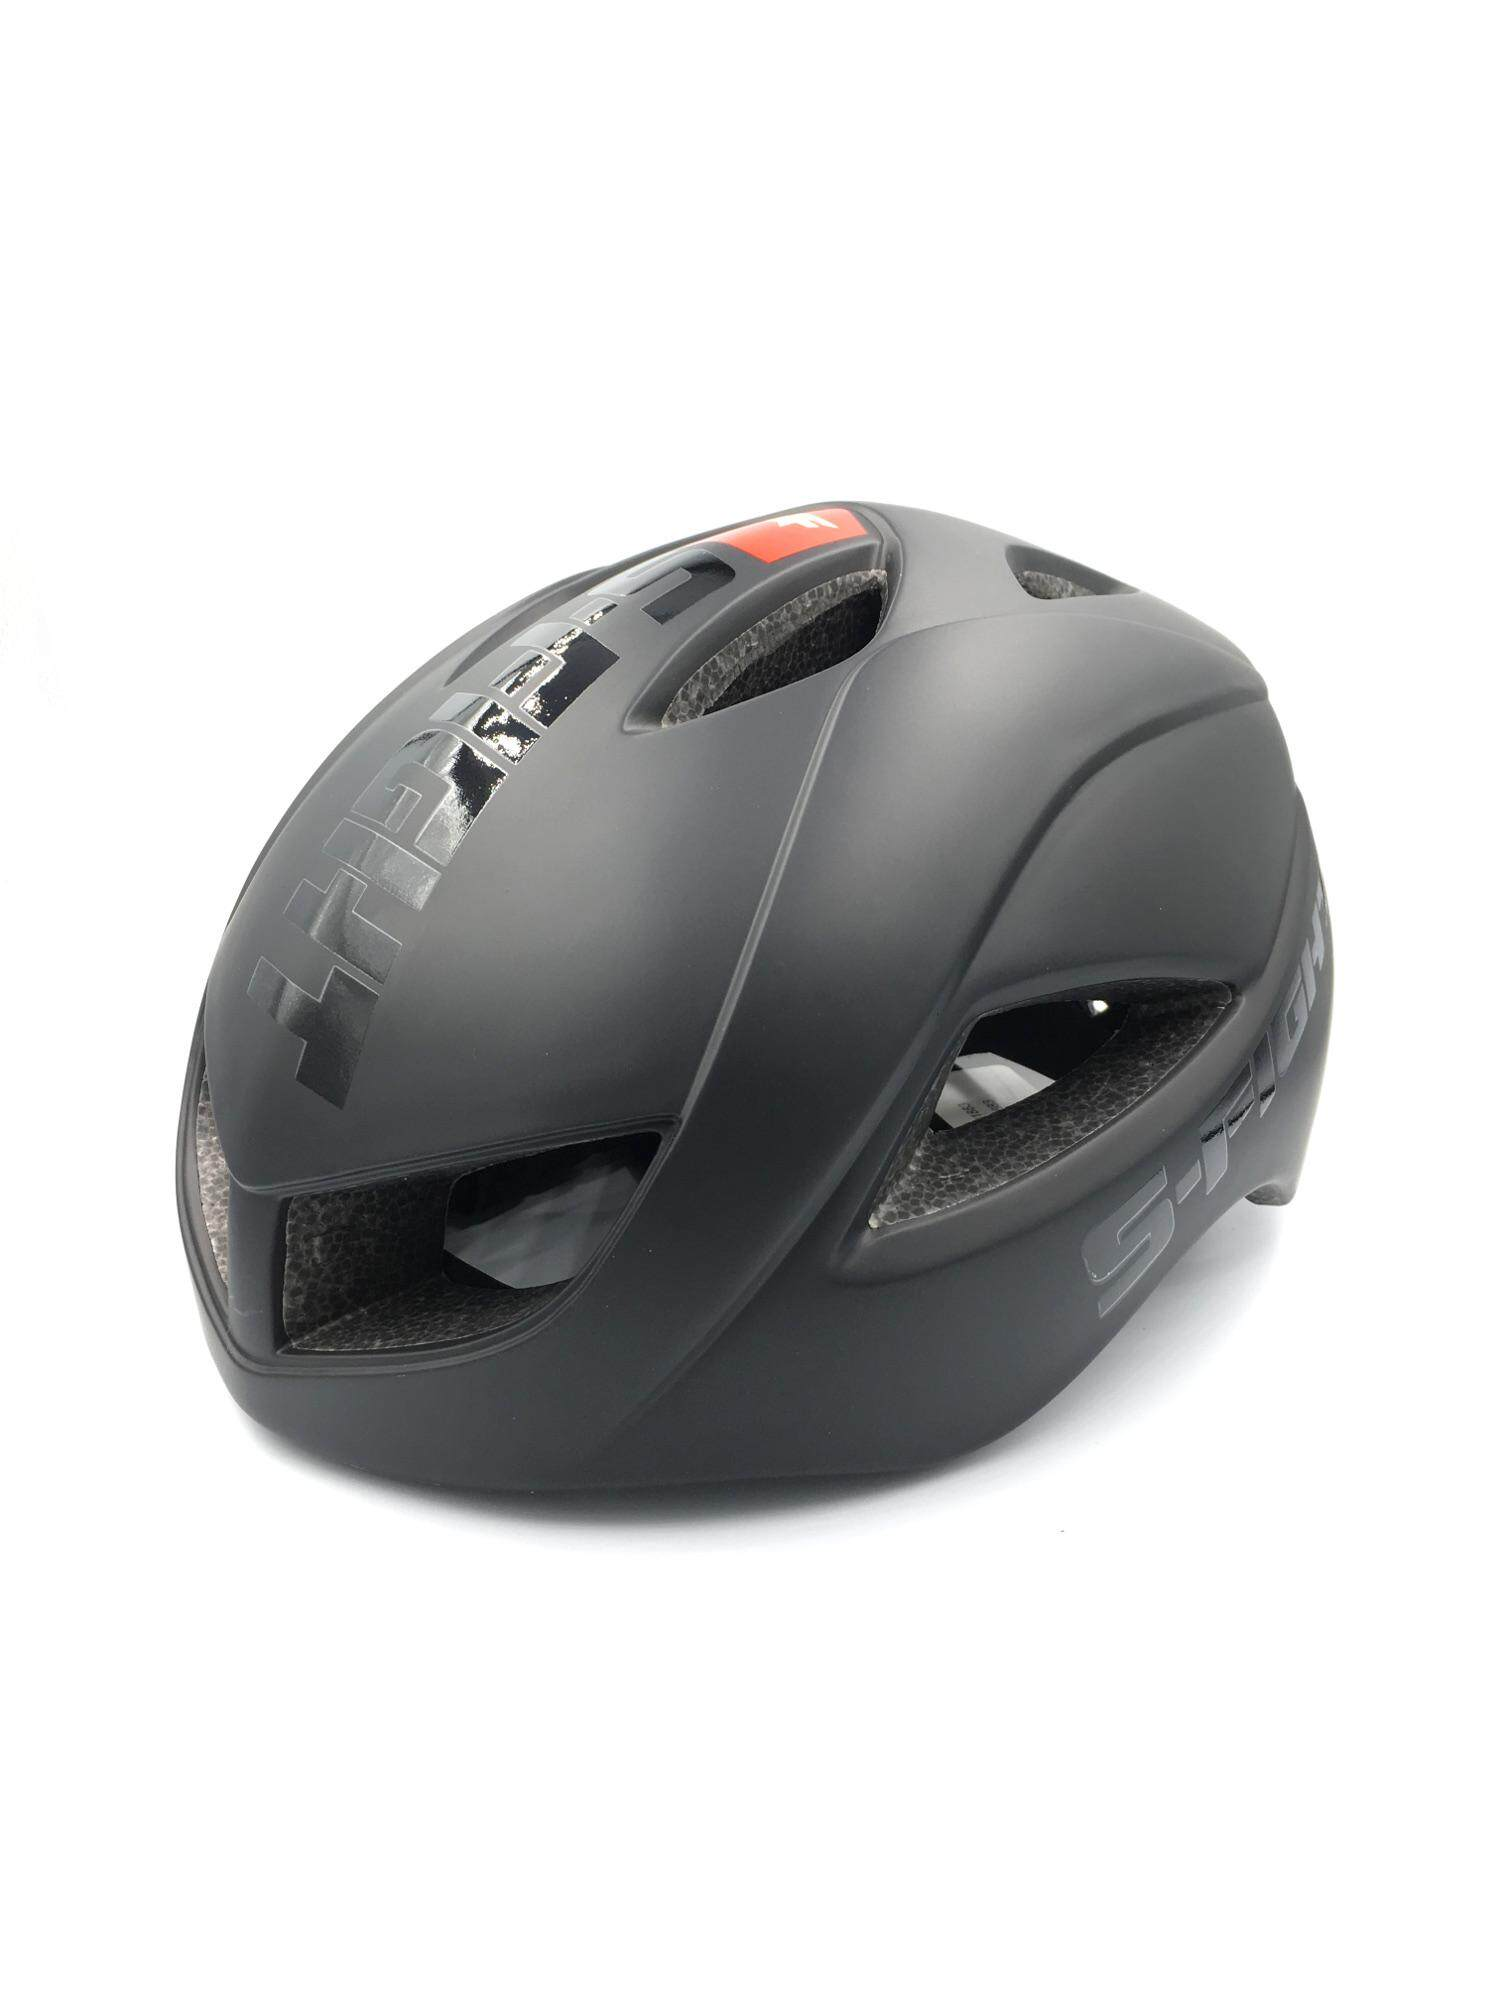 หมวกจักรยาน S-FIGHT AERO Road Bicycle Helmet (EN1078 GB24429-2009 Safety Standard Certified) code:GH-11-blk